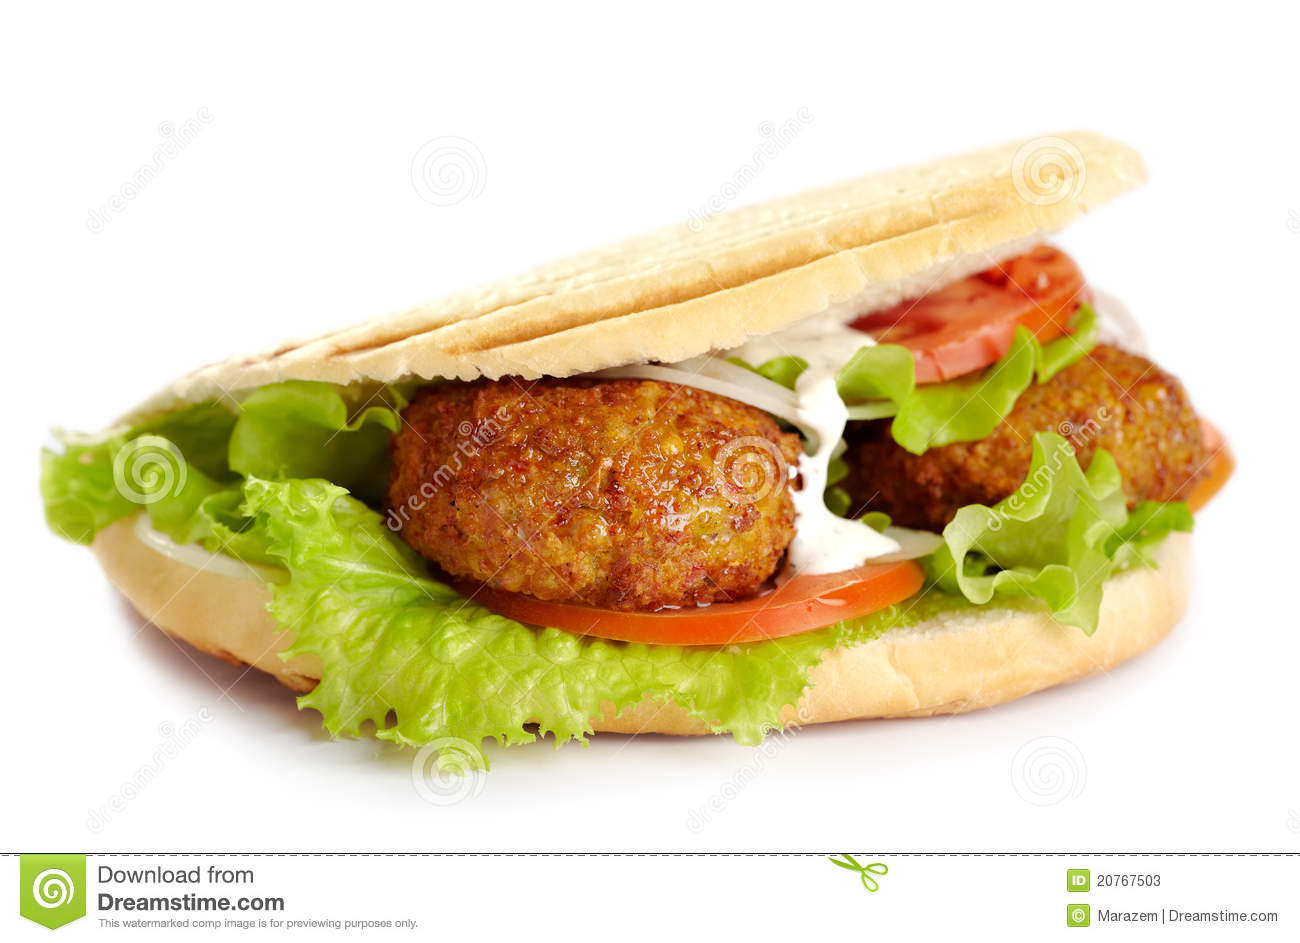 Kebab Sandwich Stock Photos - Image: 20767503